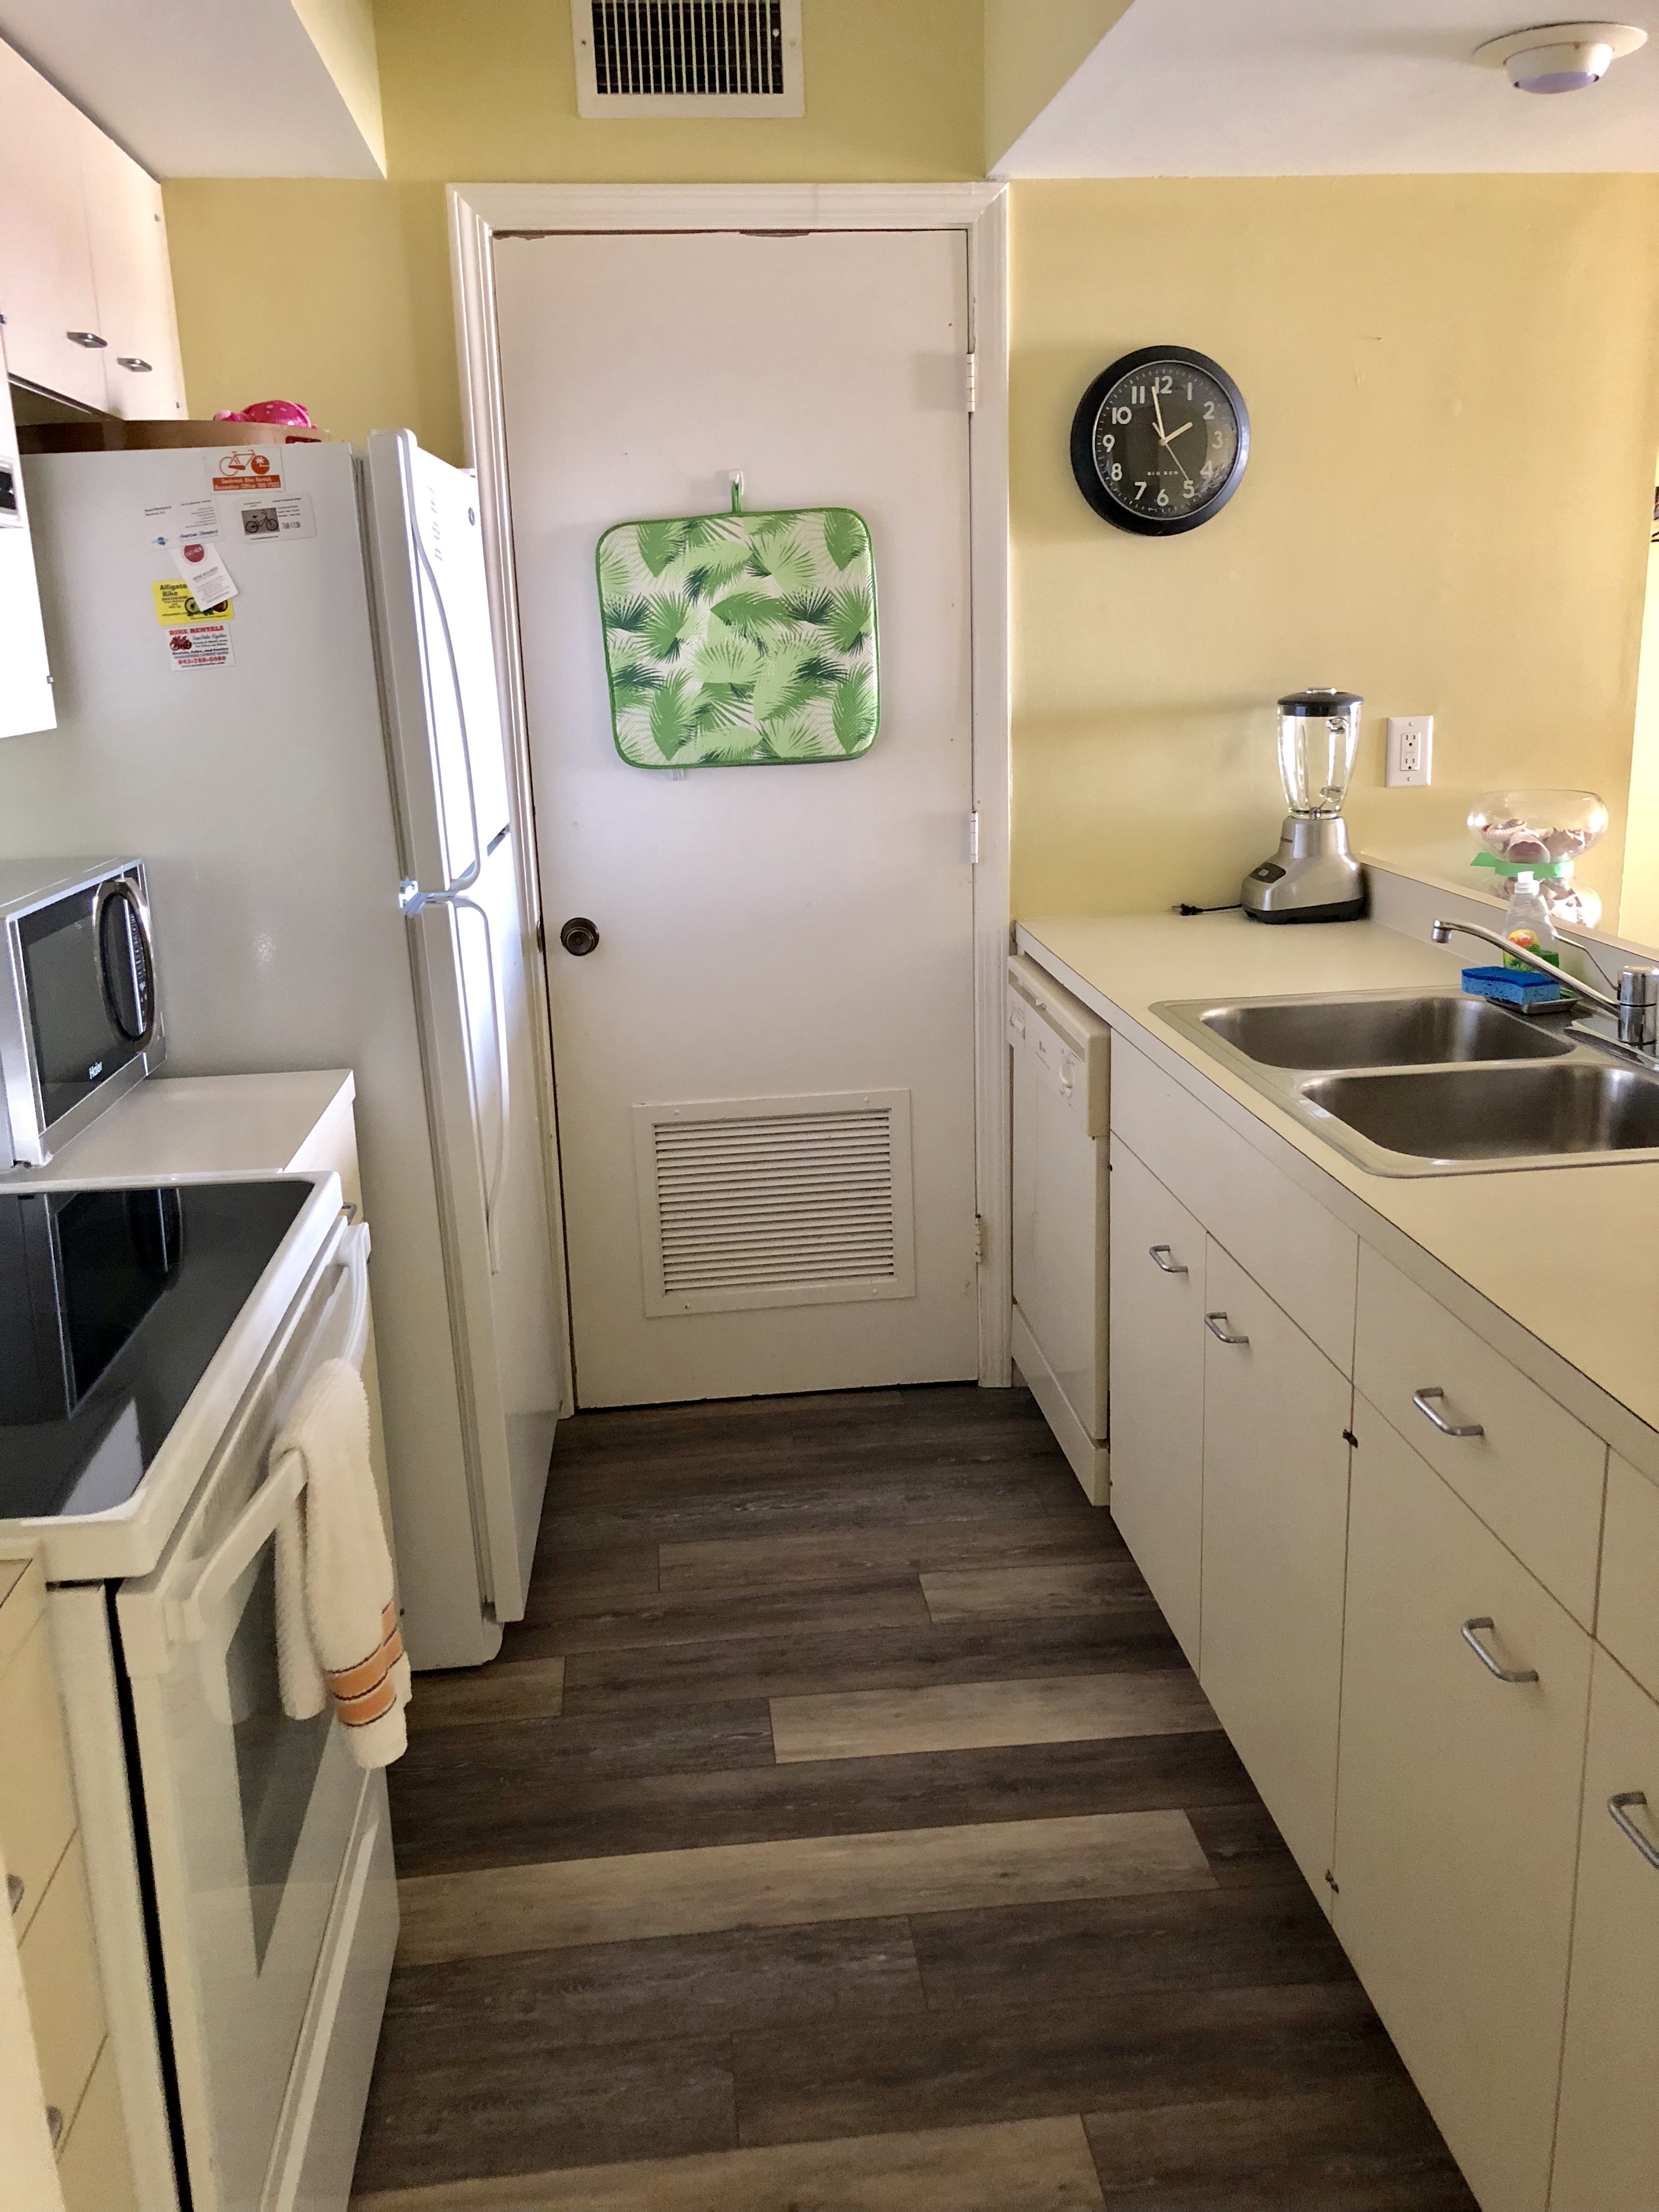 The galley kitchen is well stocked including a washer/dryer in the closet.